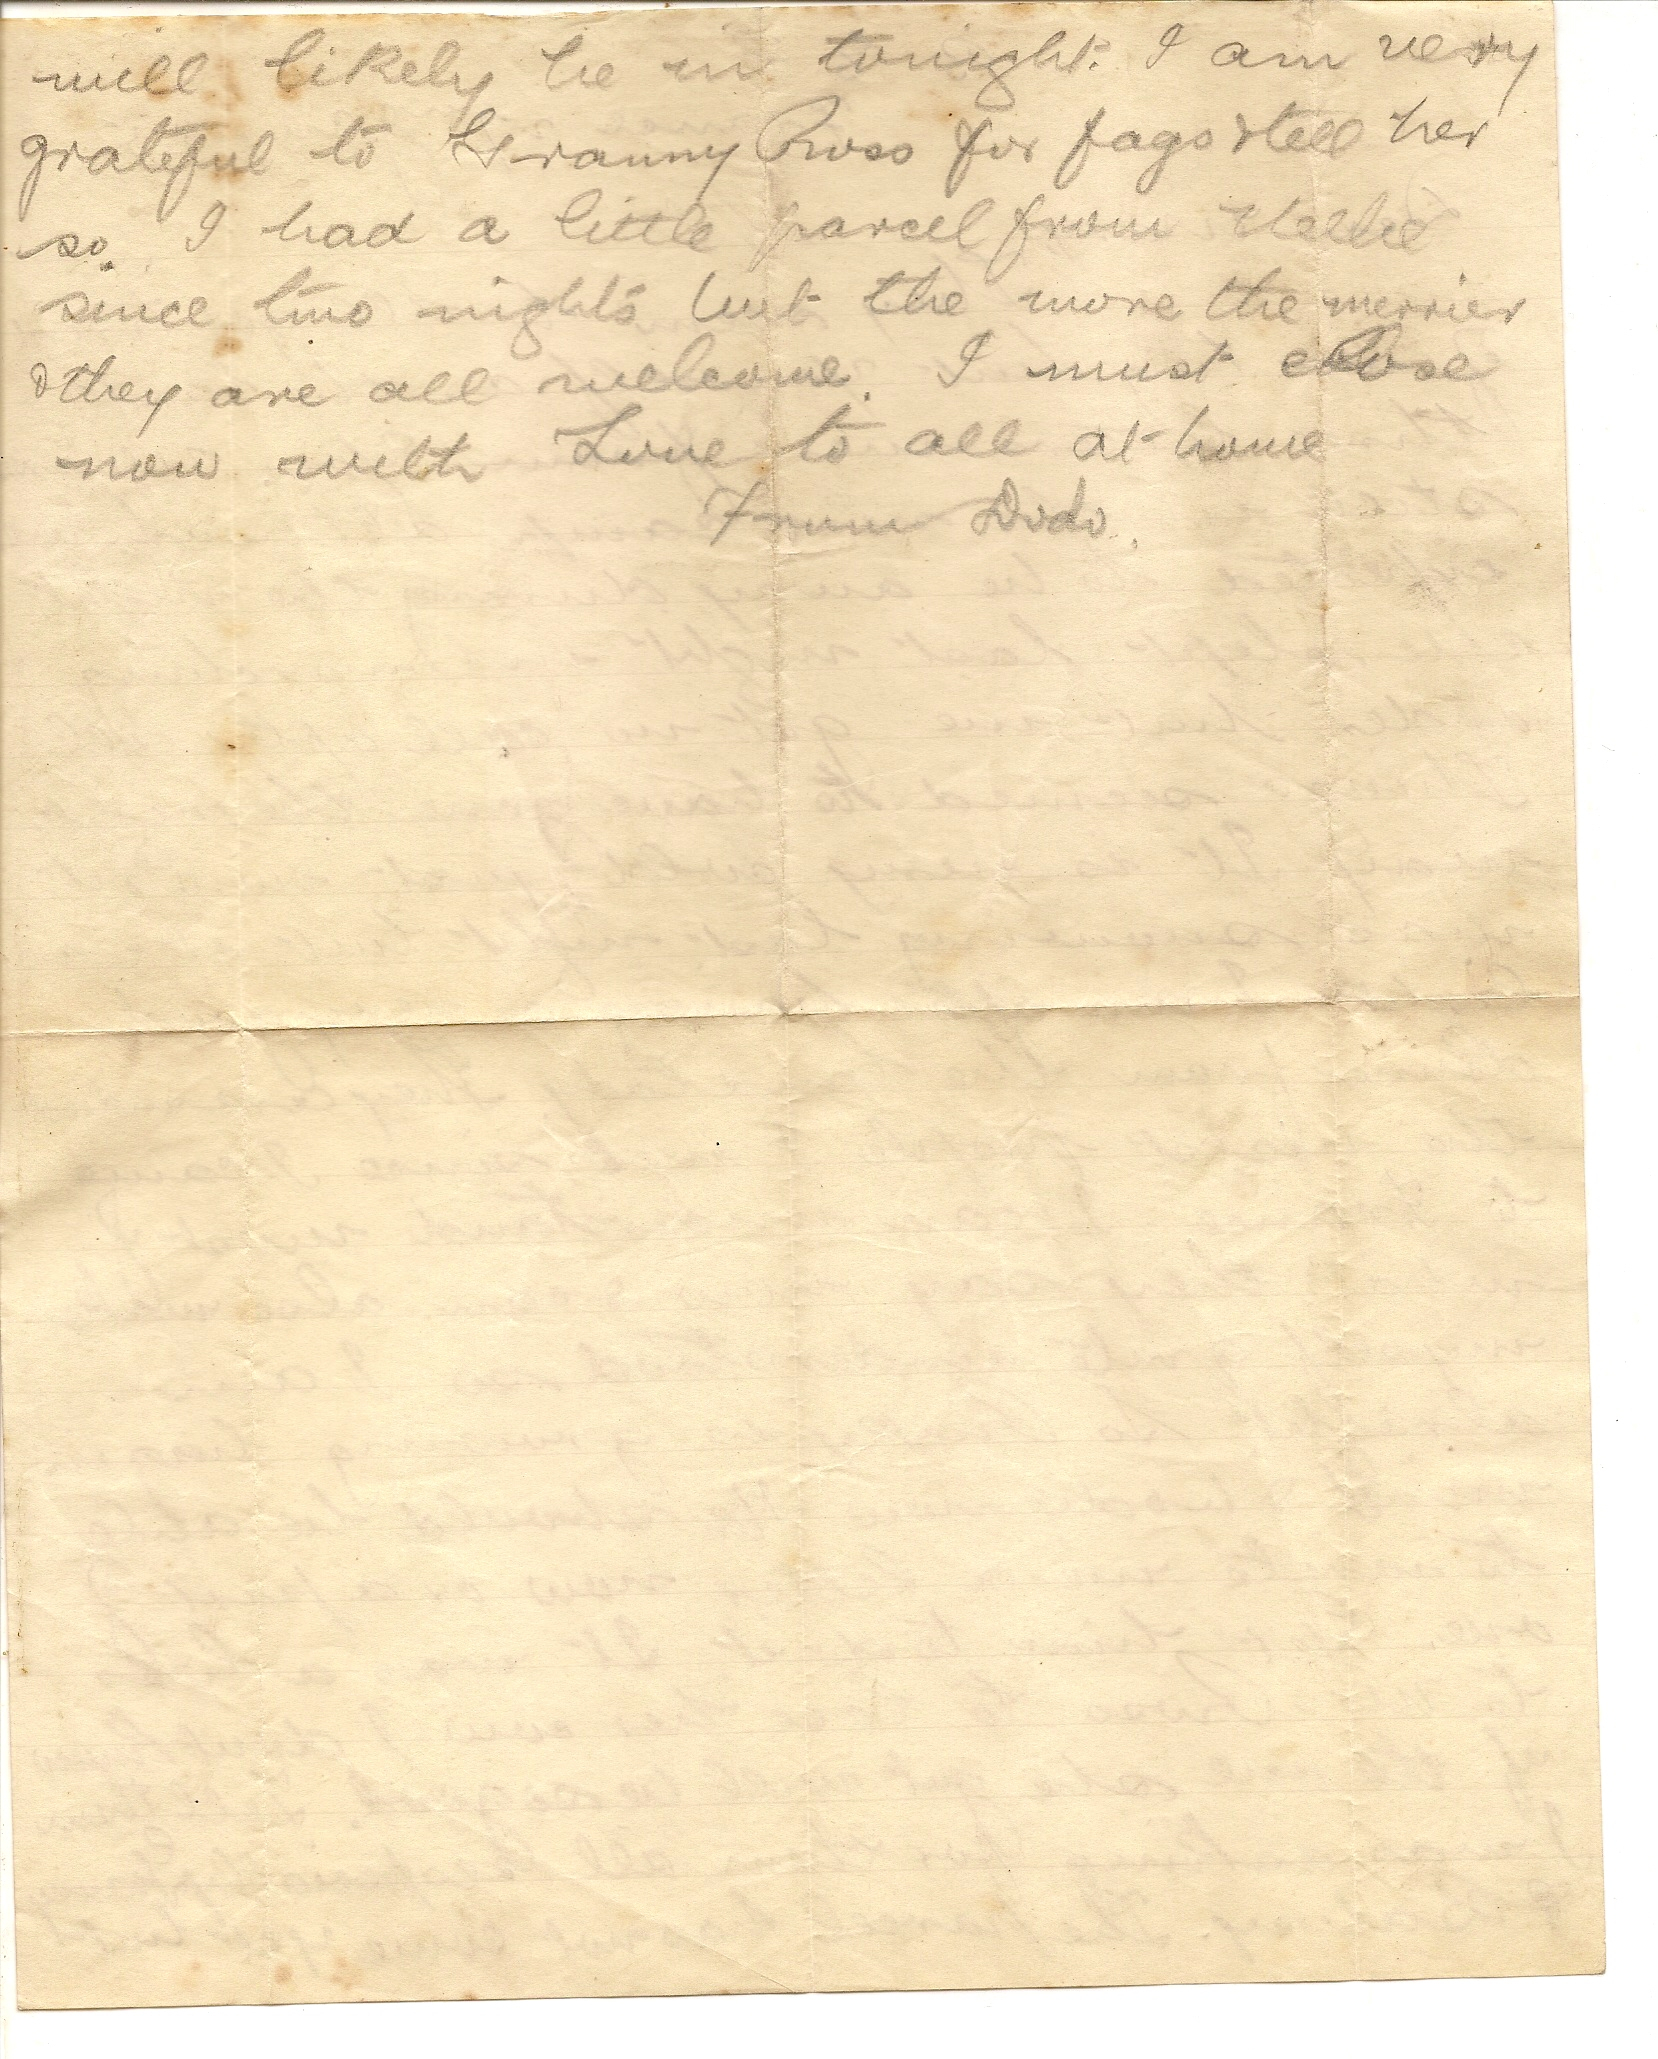 image of back of letter dated January 27 1915